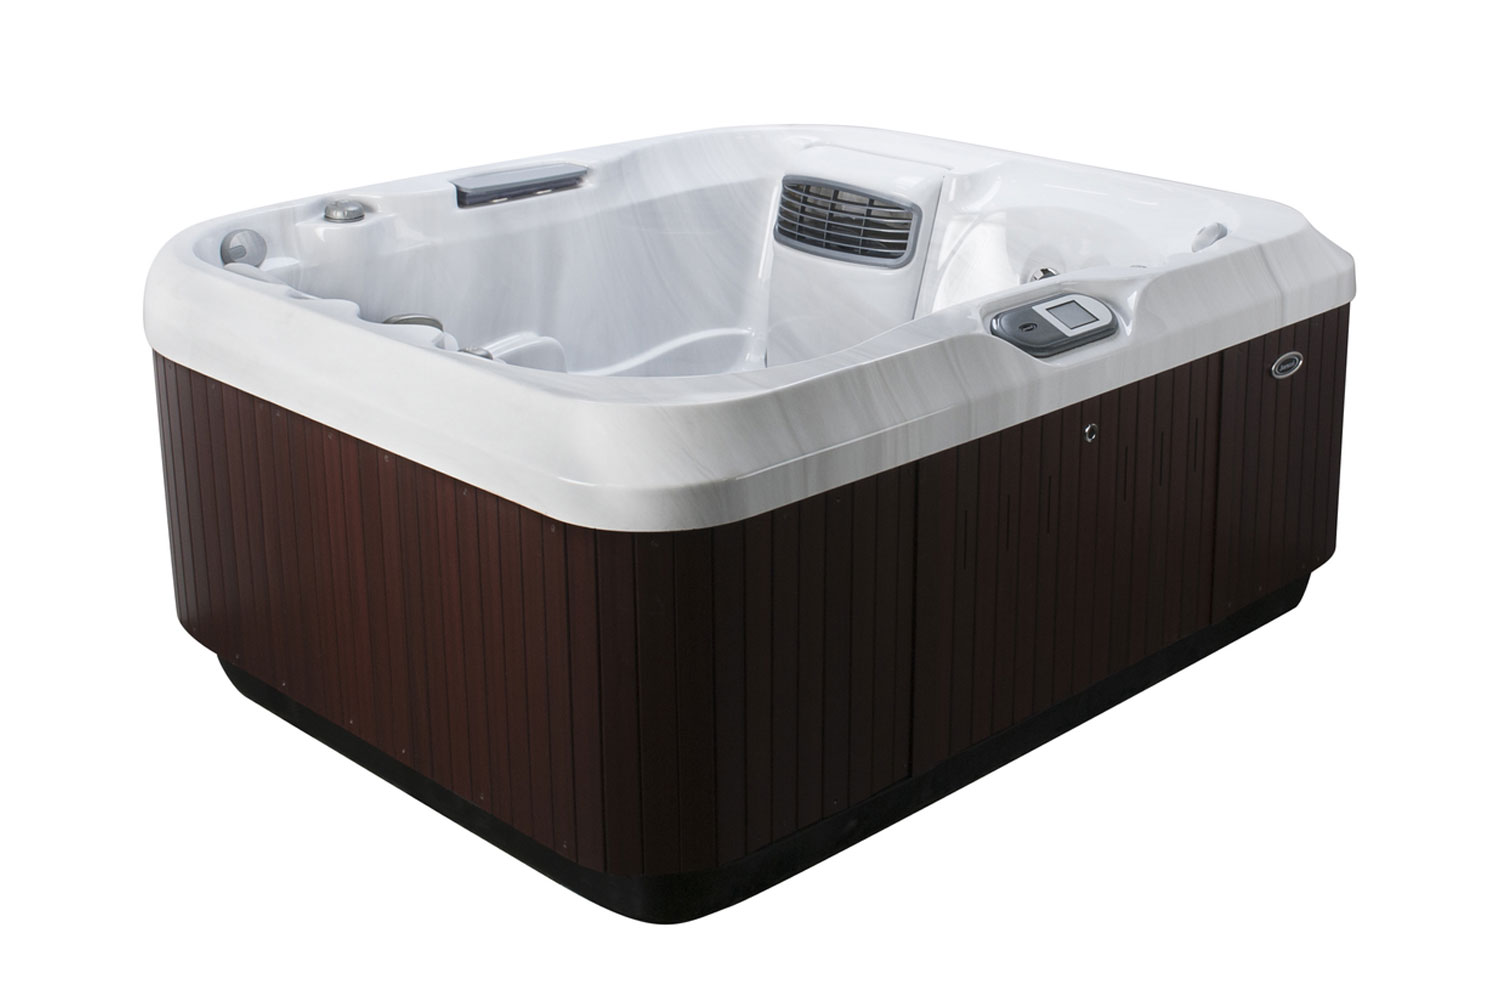 Jacuzzi Hot Tubs for Sale in New Hampshire on jacuzzi j-315 hot tub, jacuzzi j-375 hot tub, jacuzzi j-345 hot tub,